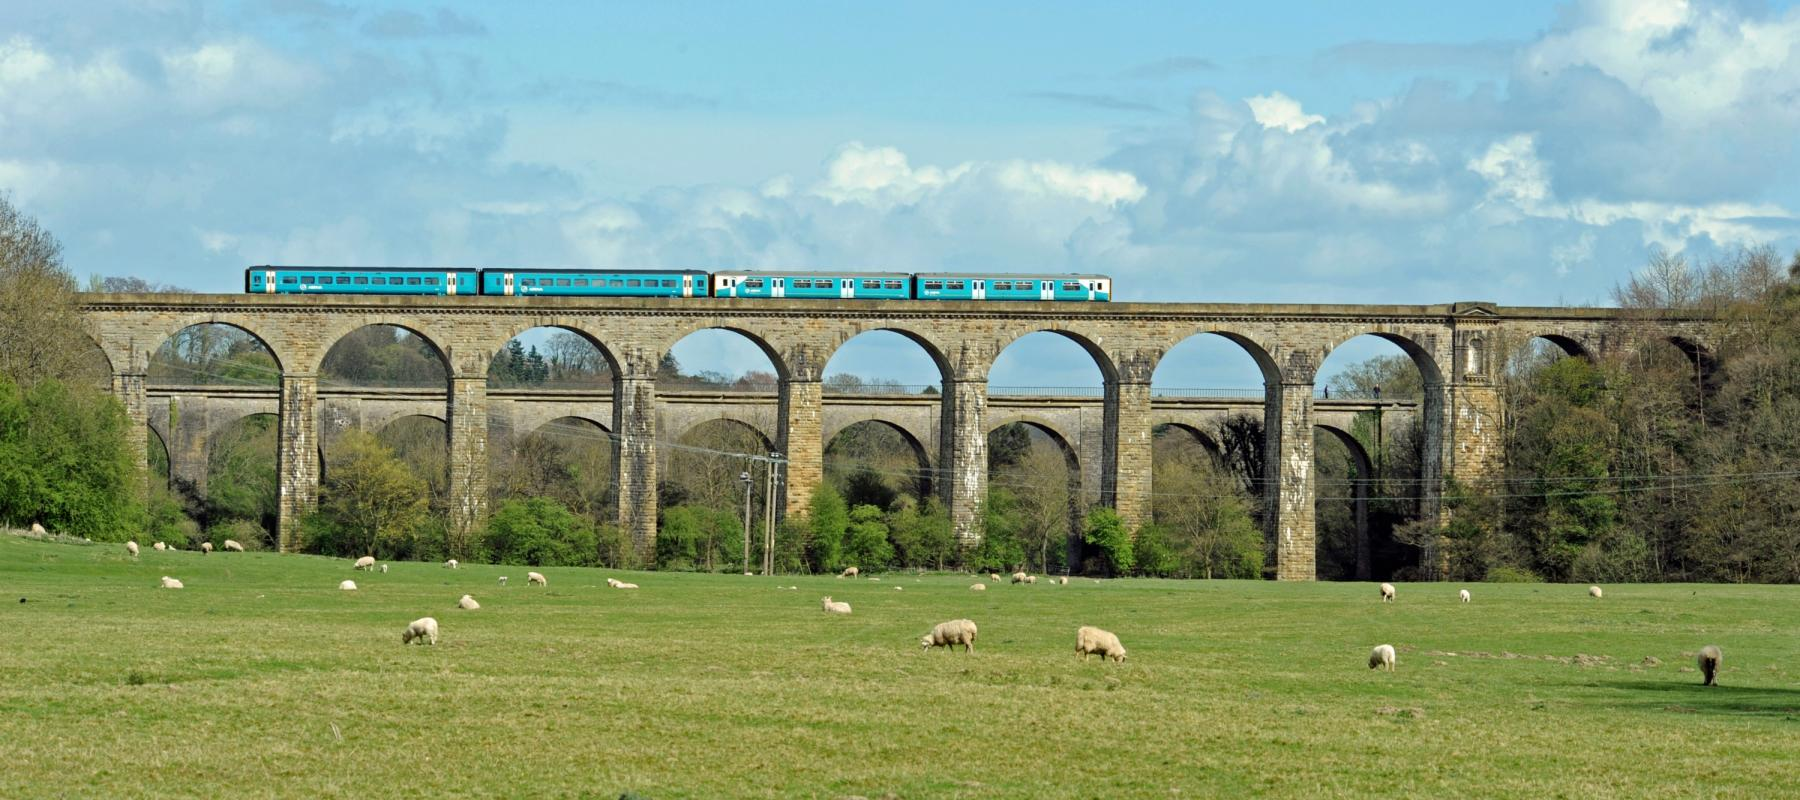 Train travelling along the Chirk Viaduct on the Chester to Shrewsbury line